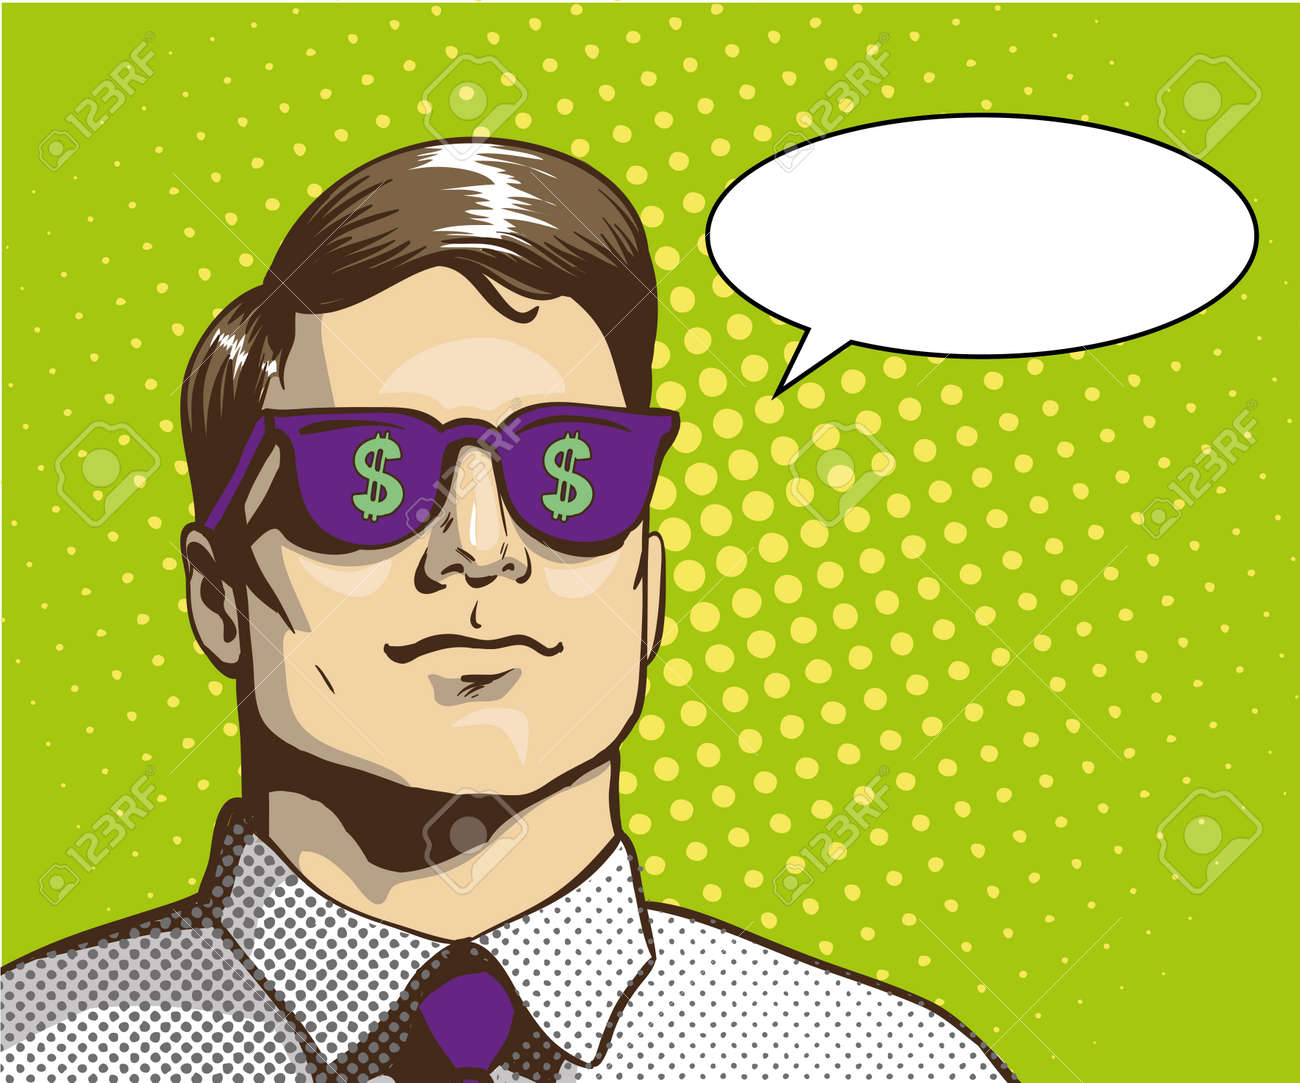 f9b2d29b50f8 Man with sunglasses with dollar sign. Vector illustration in retro pop art  style. Business